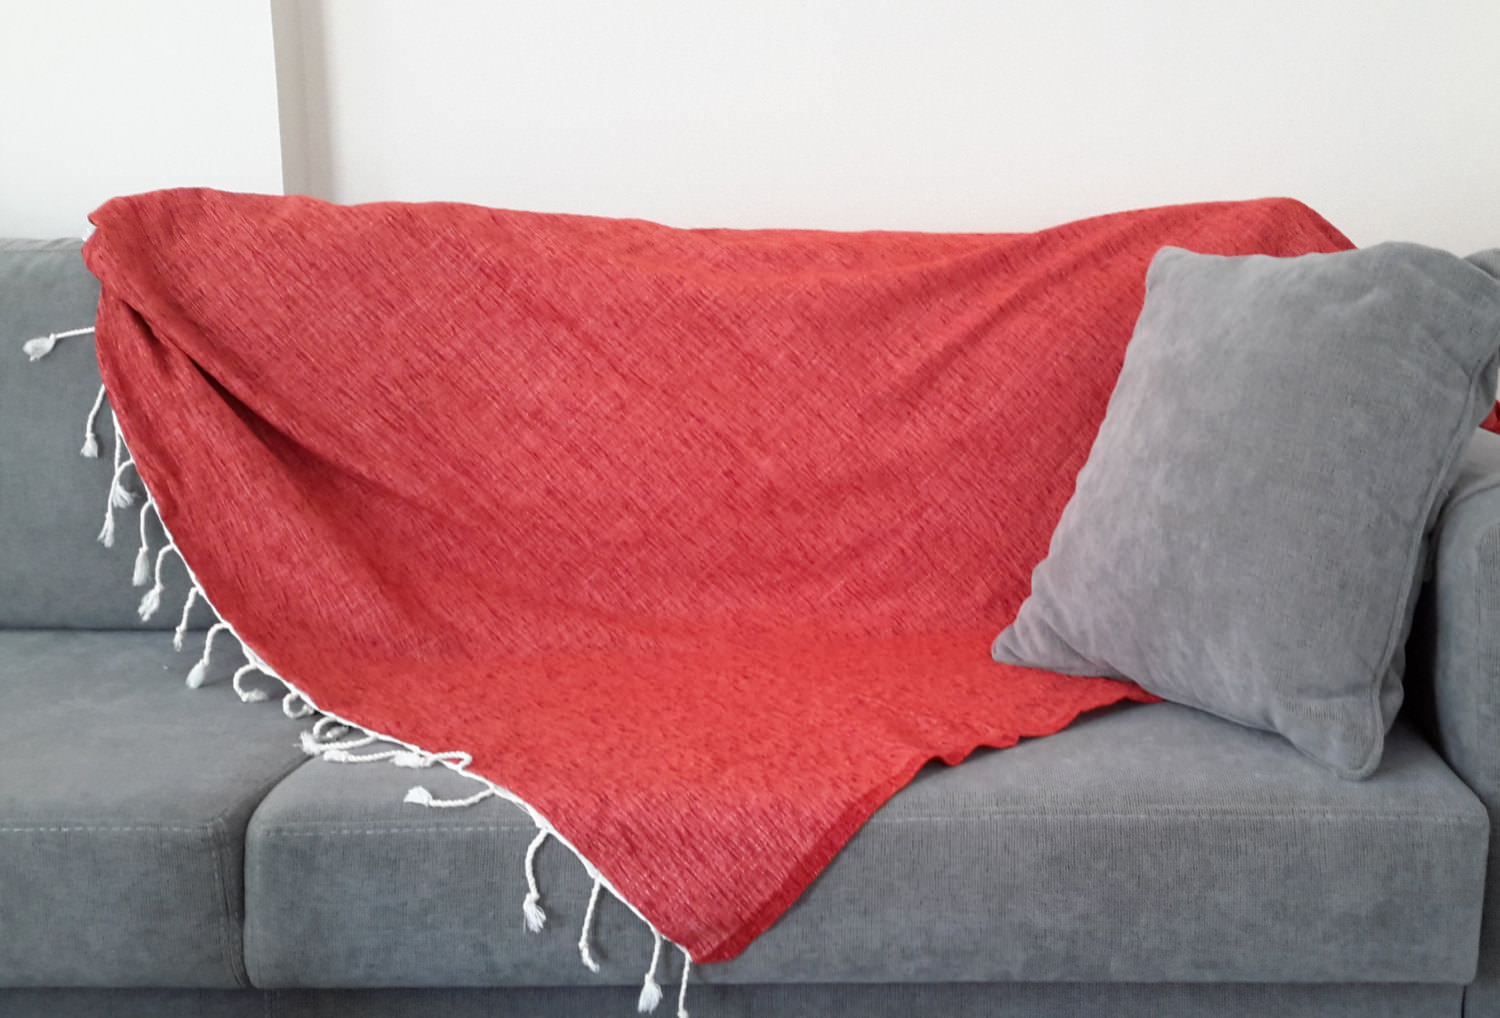 sofa cover blankets transitional styles handwoven ecofriendly seat bedspread schooner